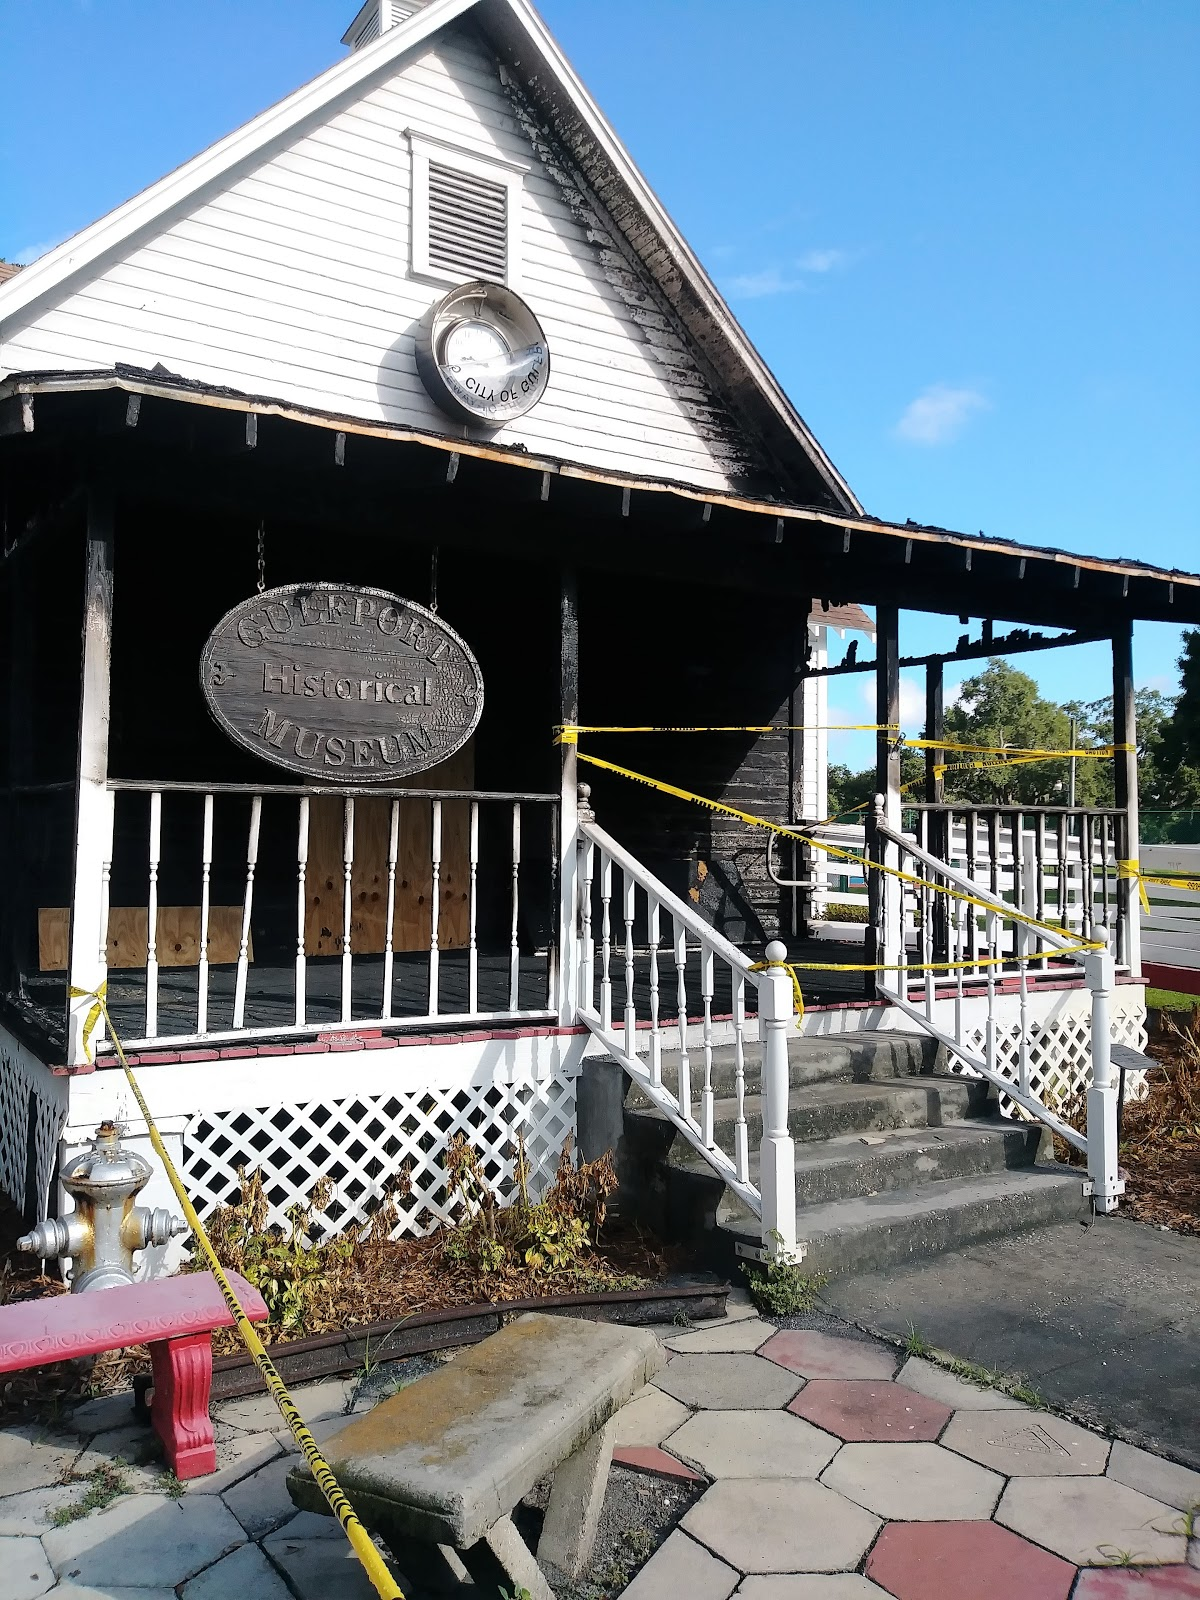 Gulfport Historical Society, After the fire. Artist's contributions will be helpful in restoring the building .